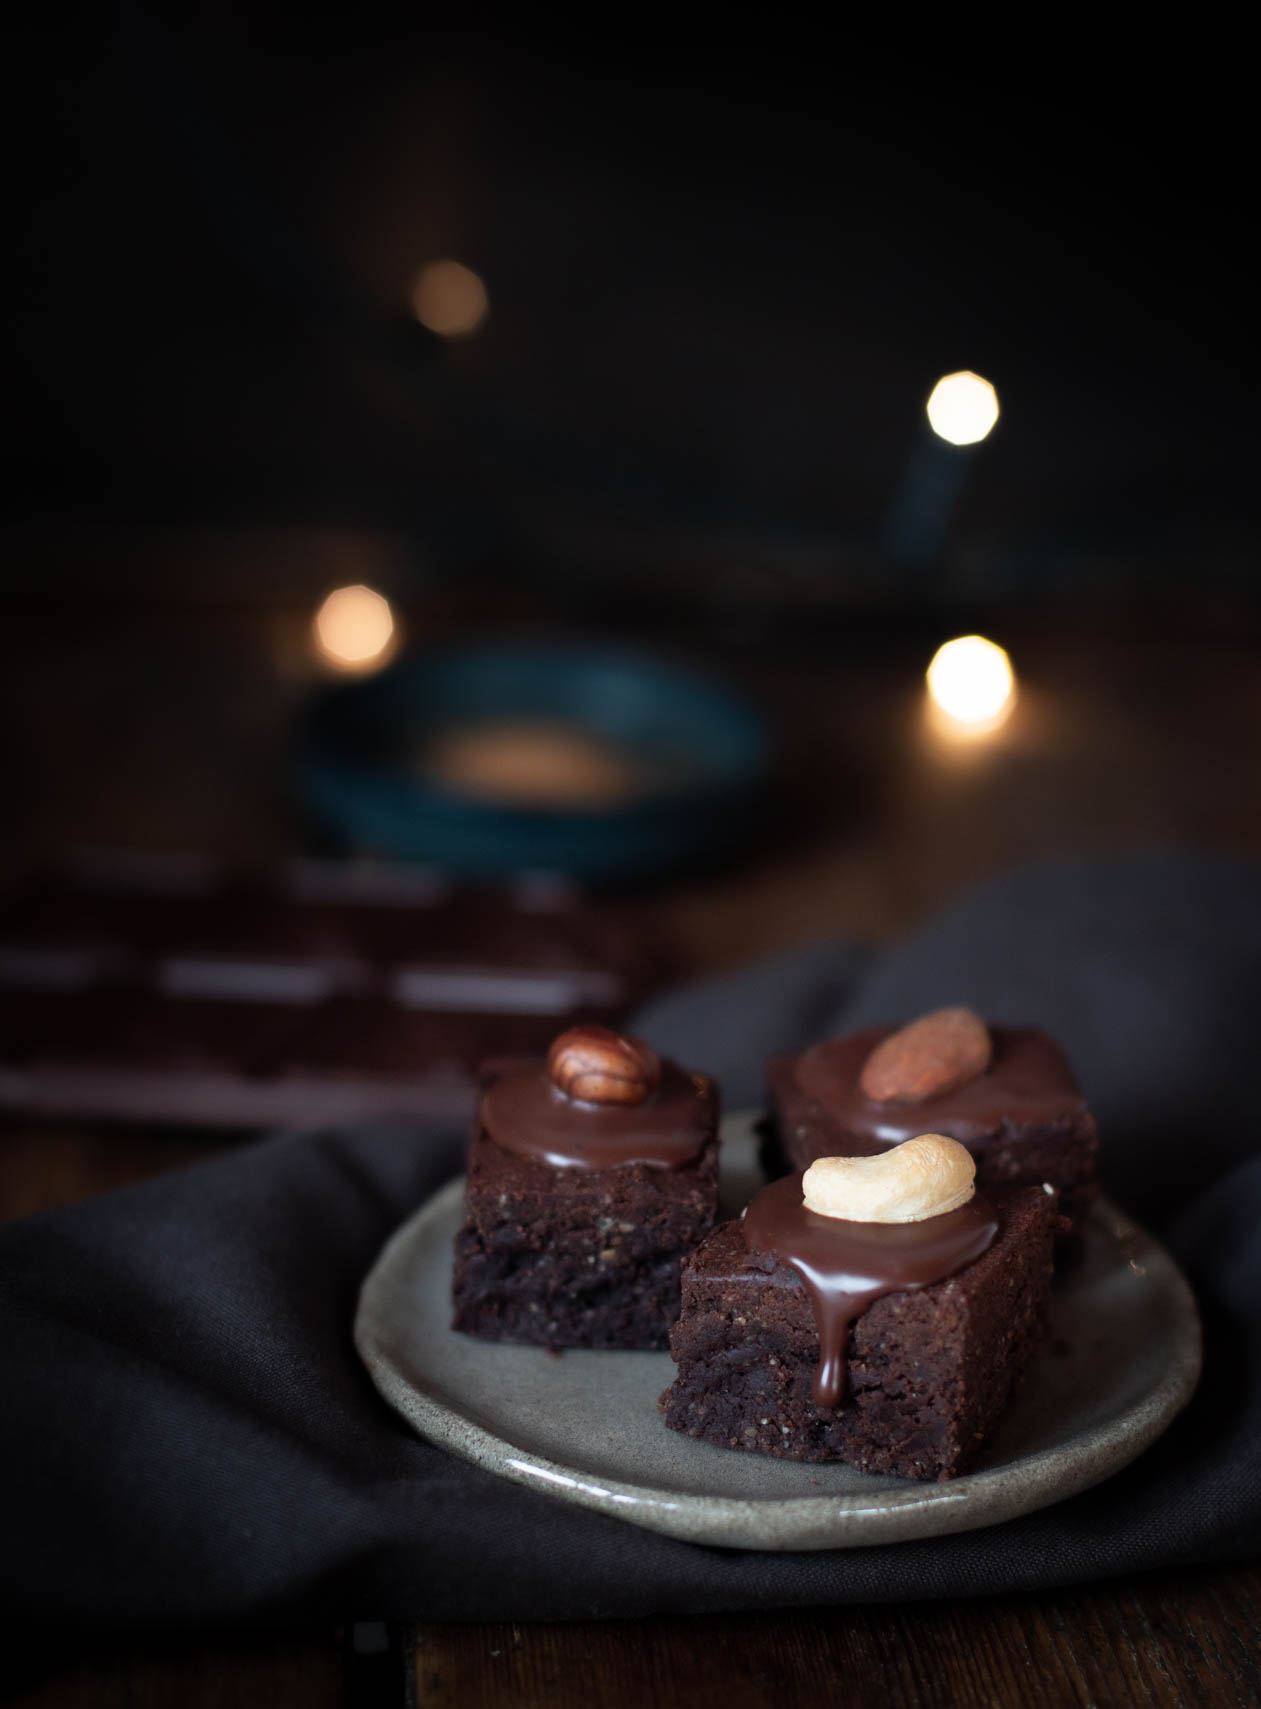 Schoko & Nuss Weihnachtsbrownies {flowers on my plate}